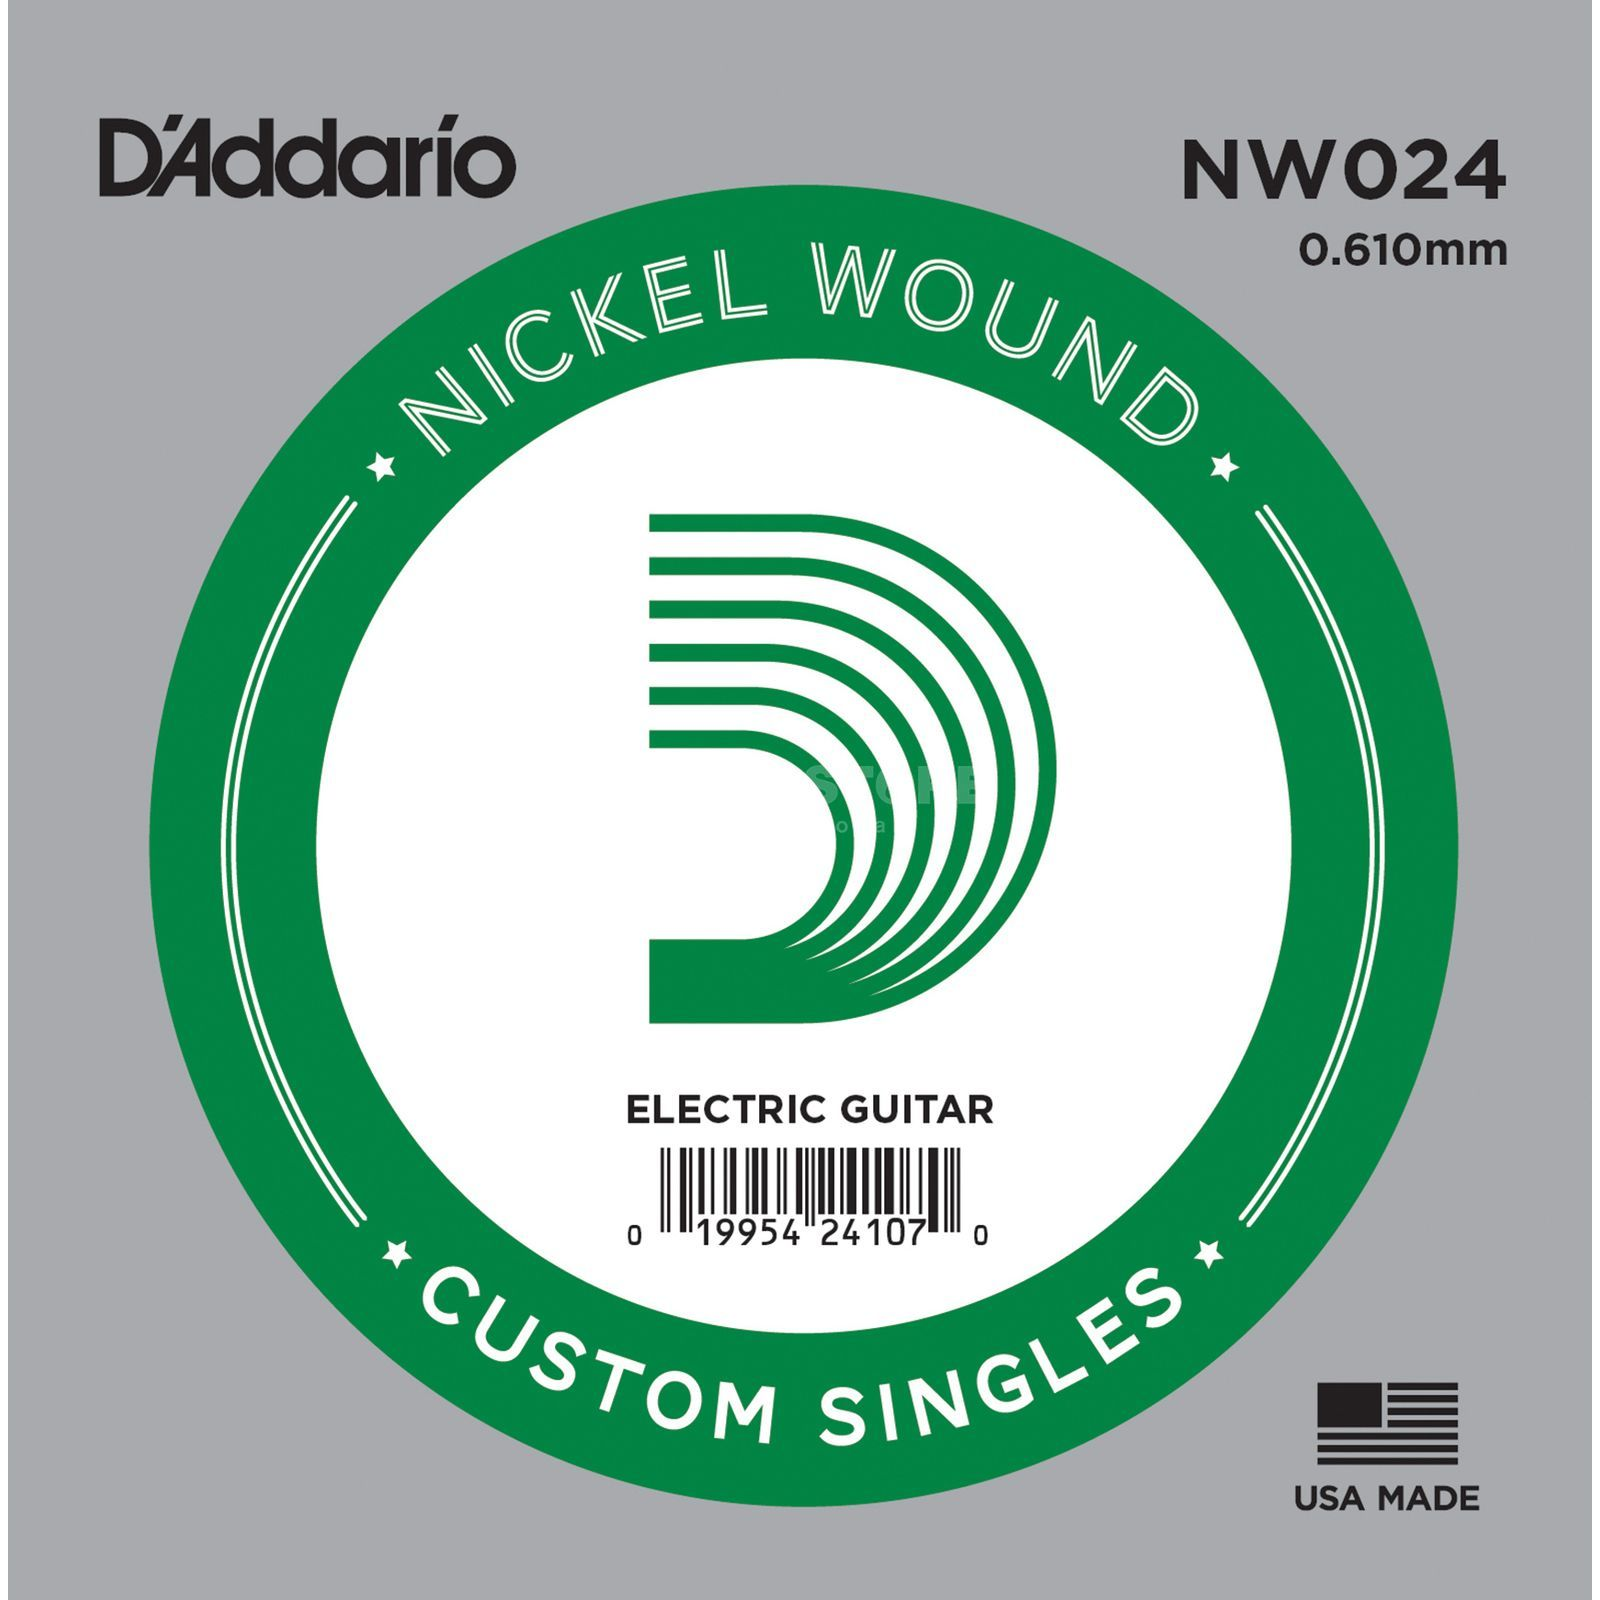 D'Addario Single String NW024 Nickelwound Produktbillede